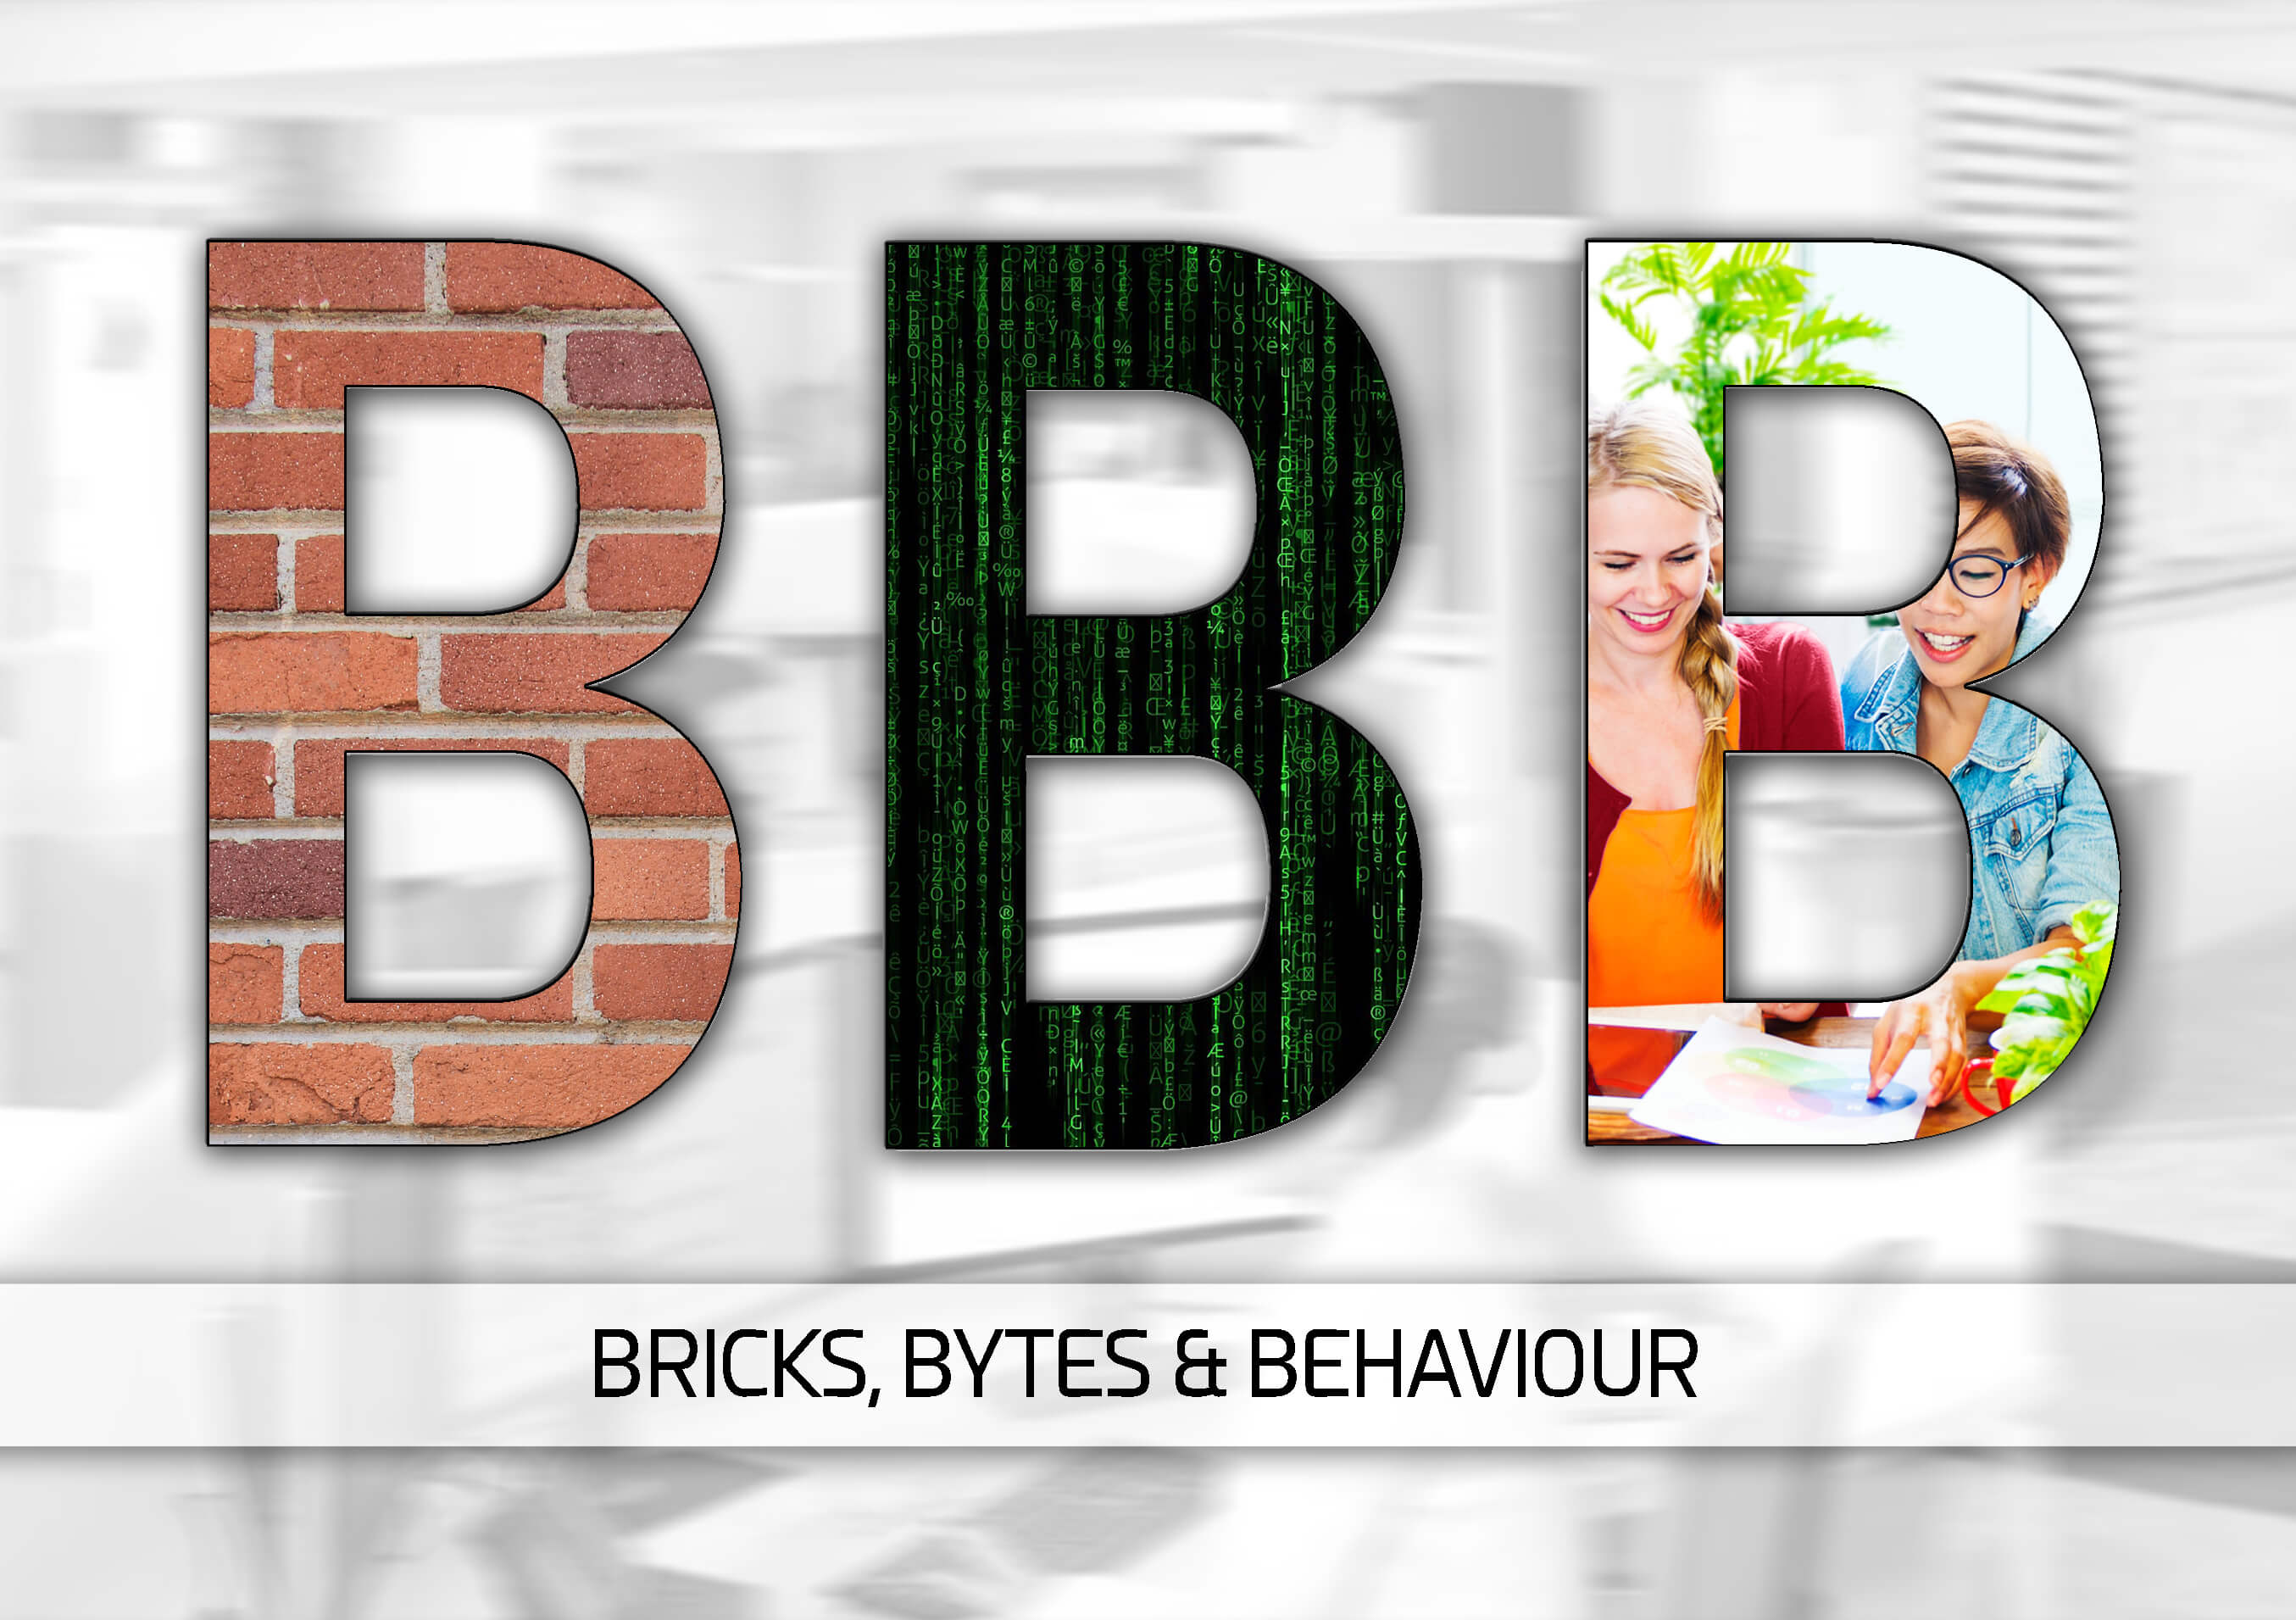 Bricks, Bytes & Behaviours